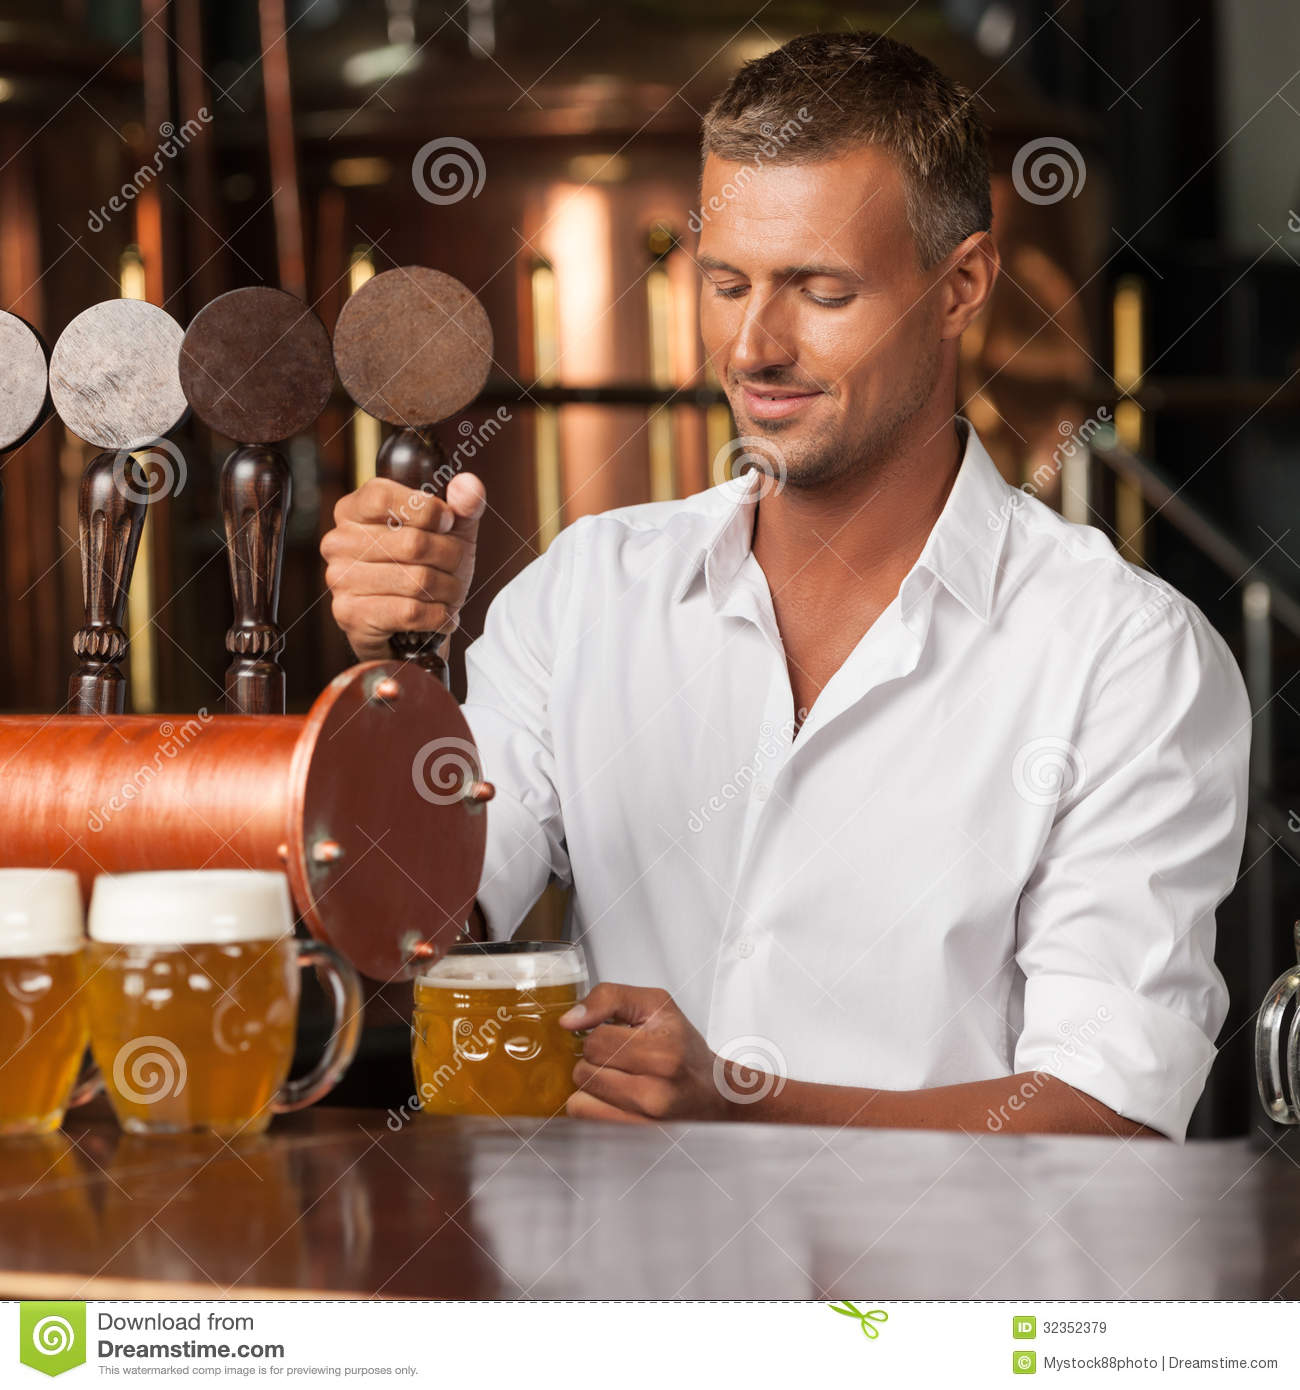 Serving The Best Beer In Town. Handsome Bartender In White Shirt Stock Image - Image of ...